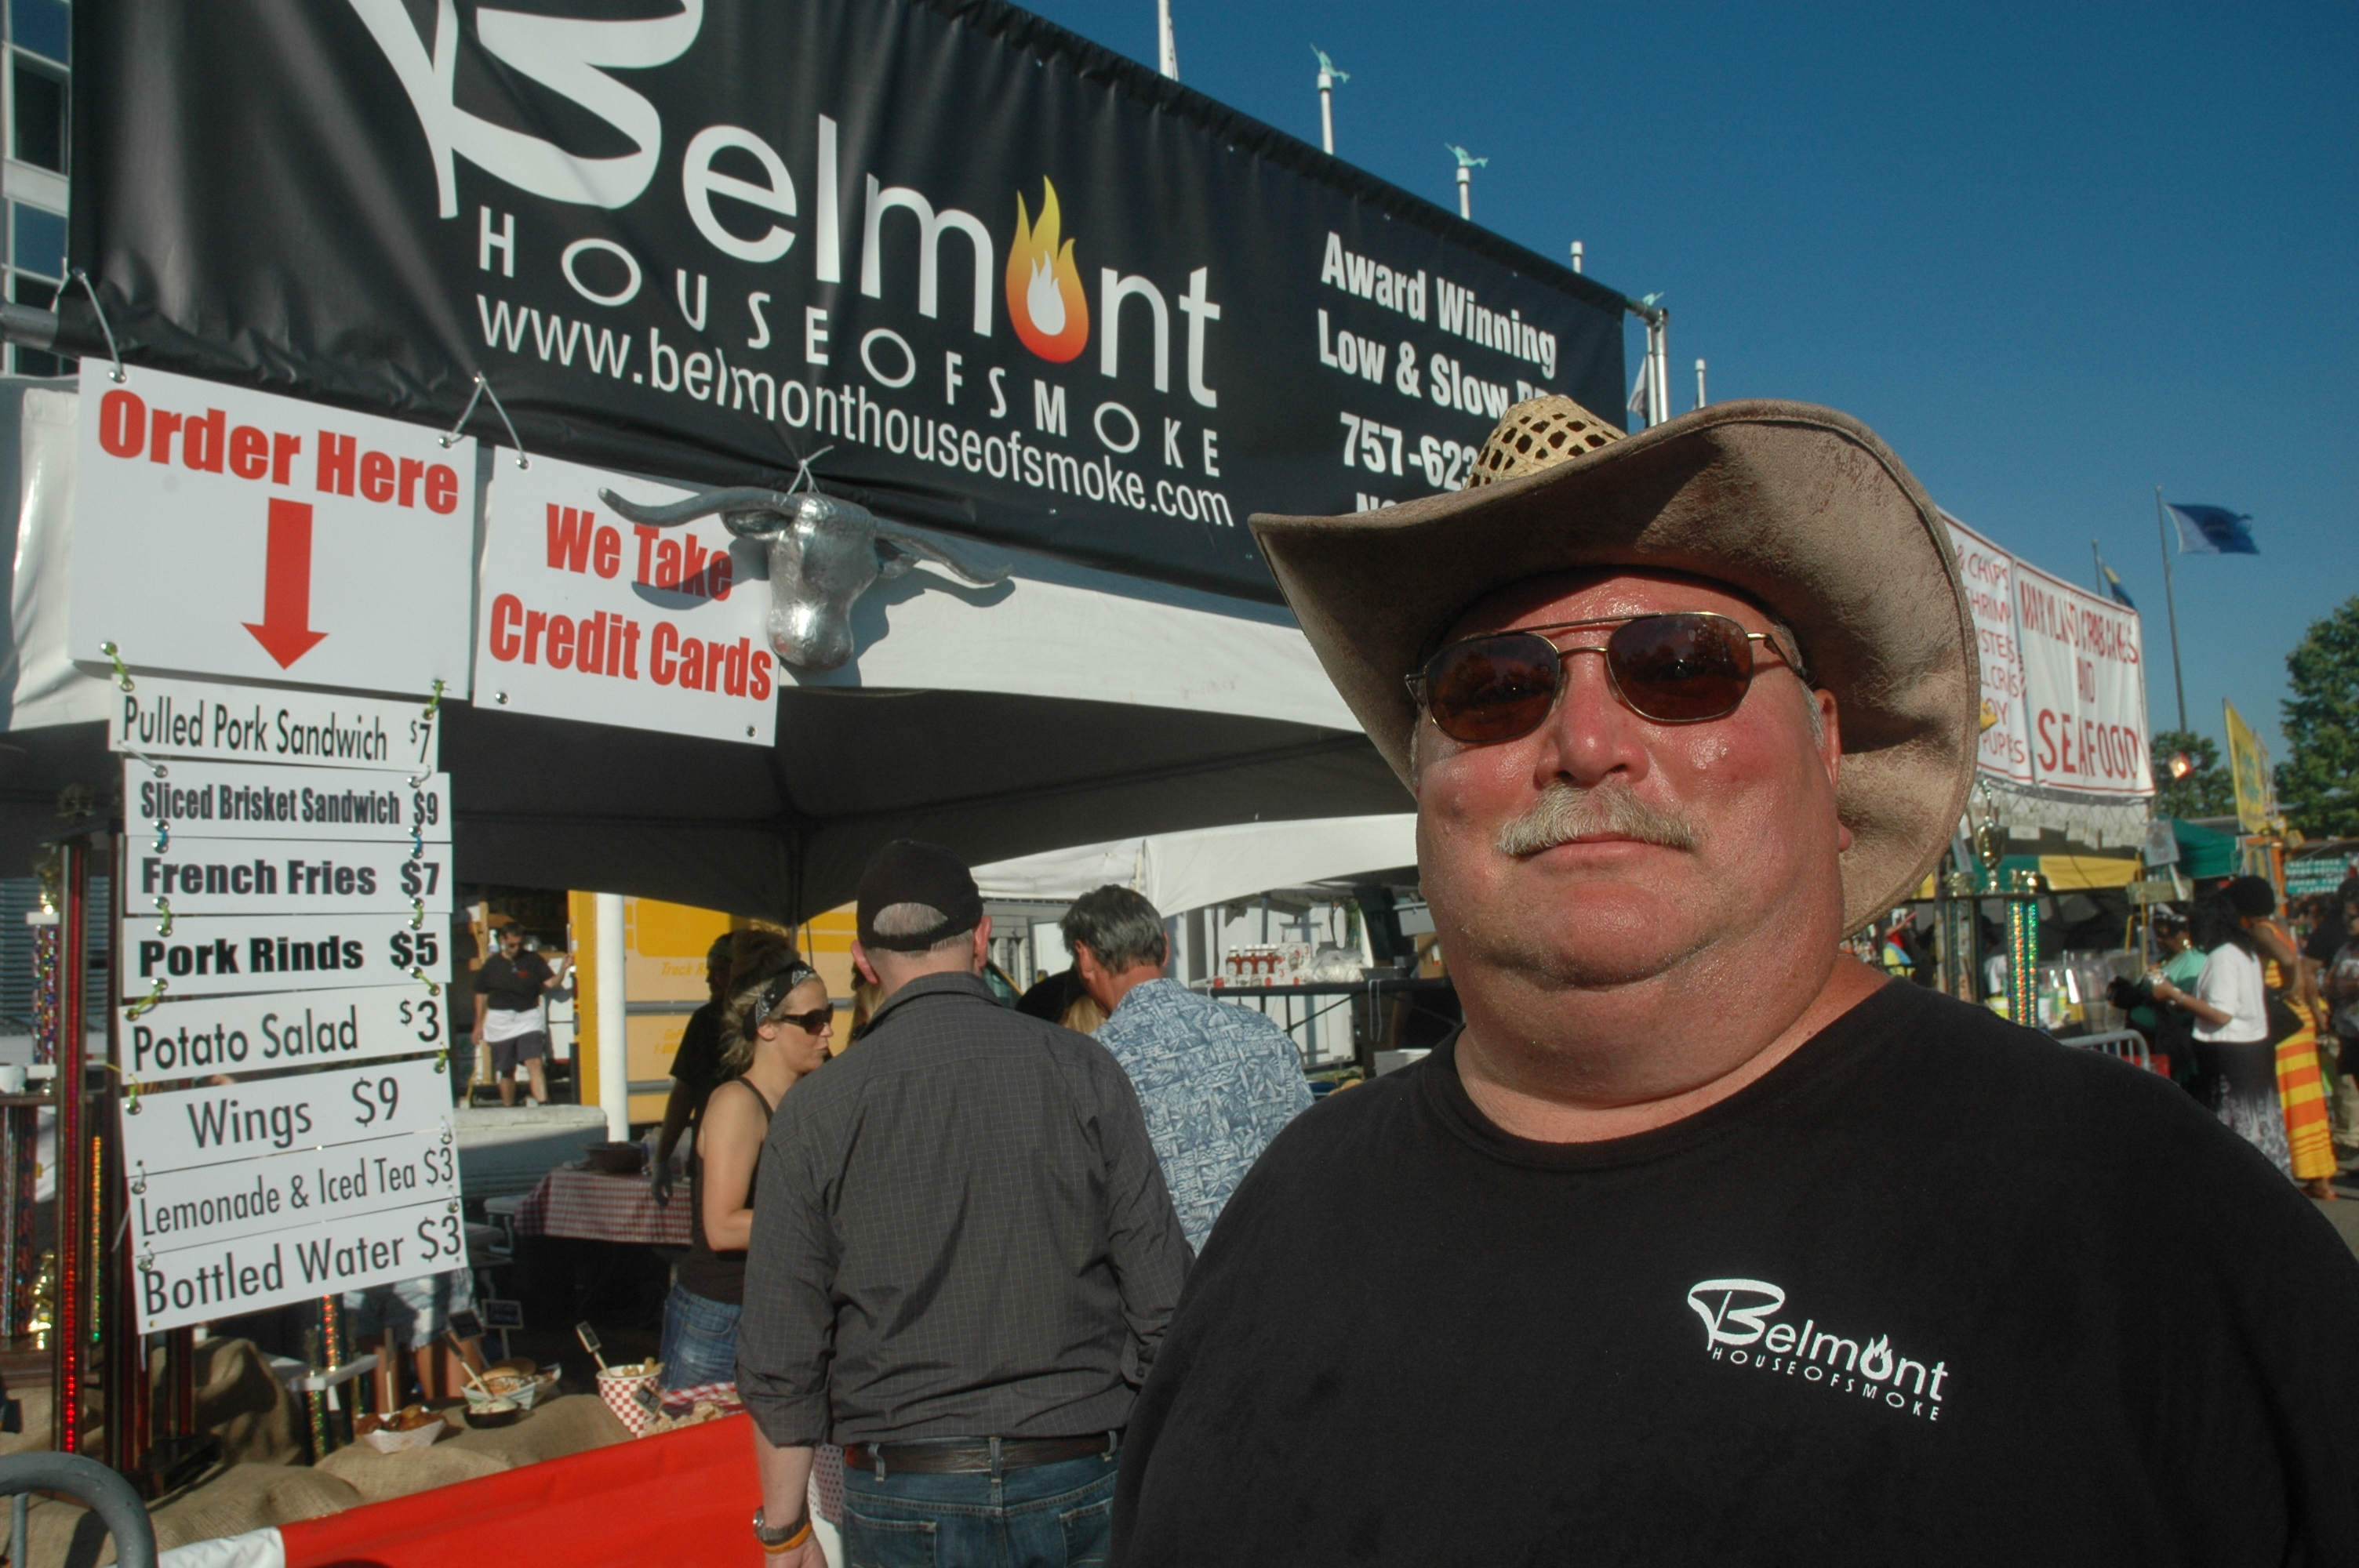 The King of BBQ: Belmont House of Smoke wins awards, hits the festival circuit